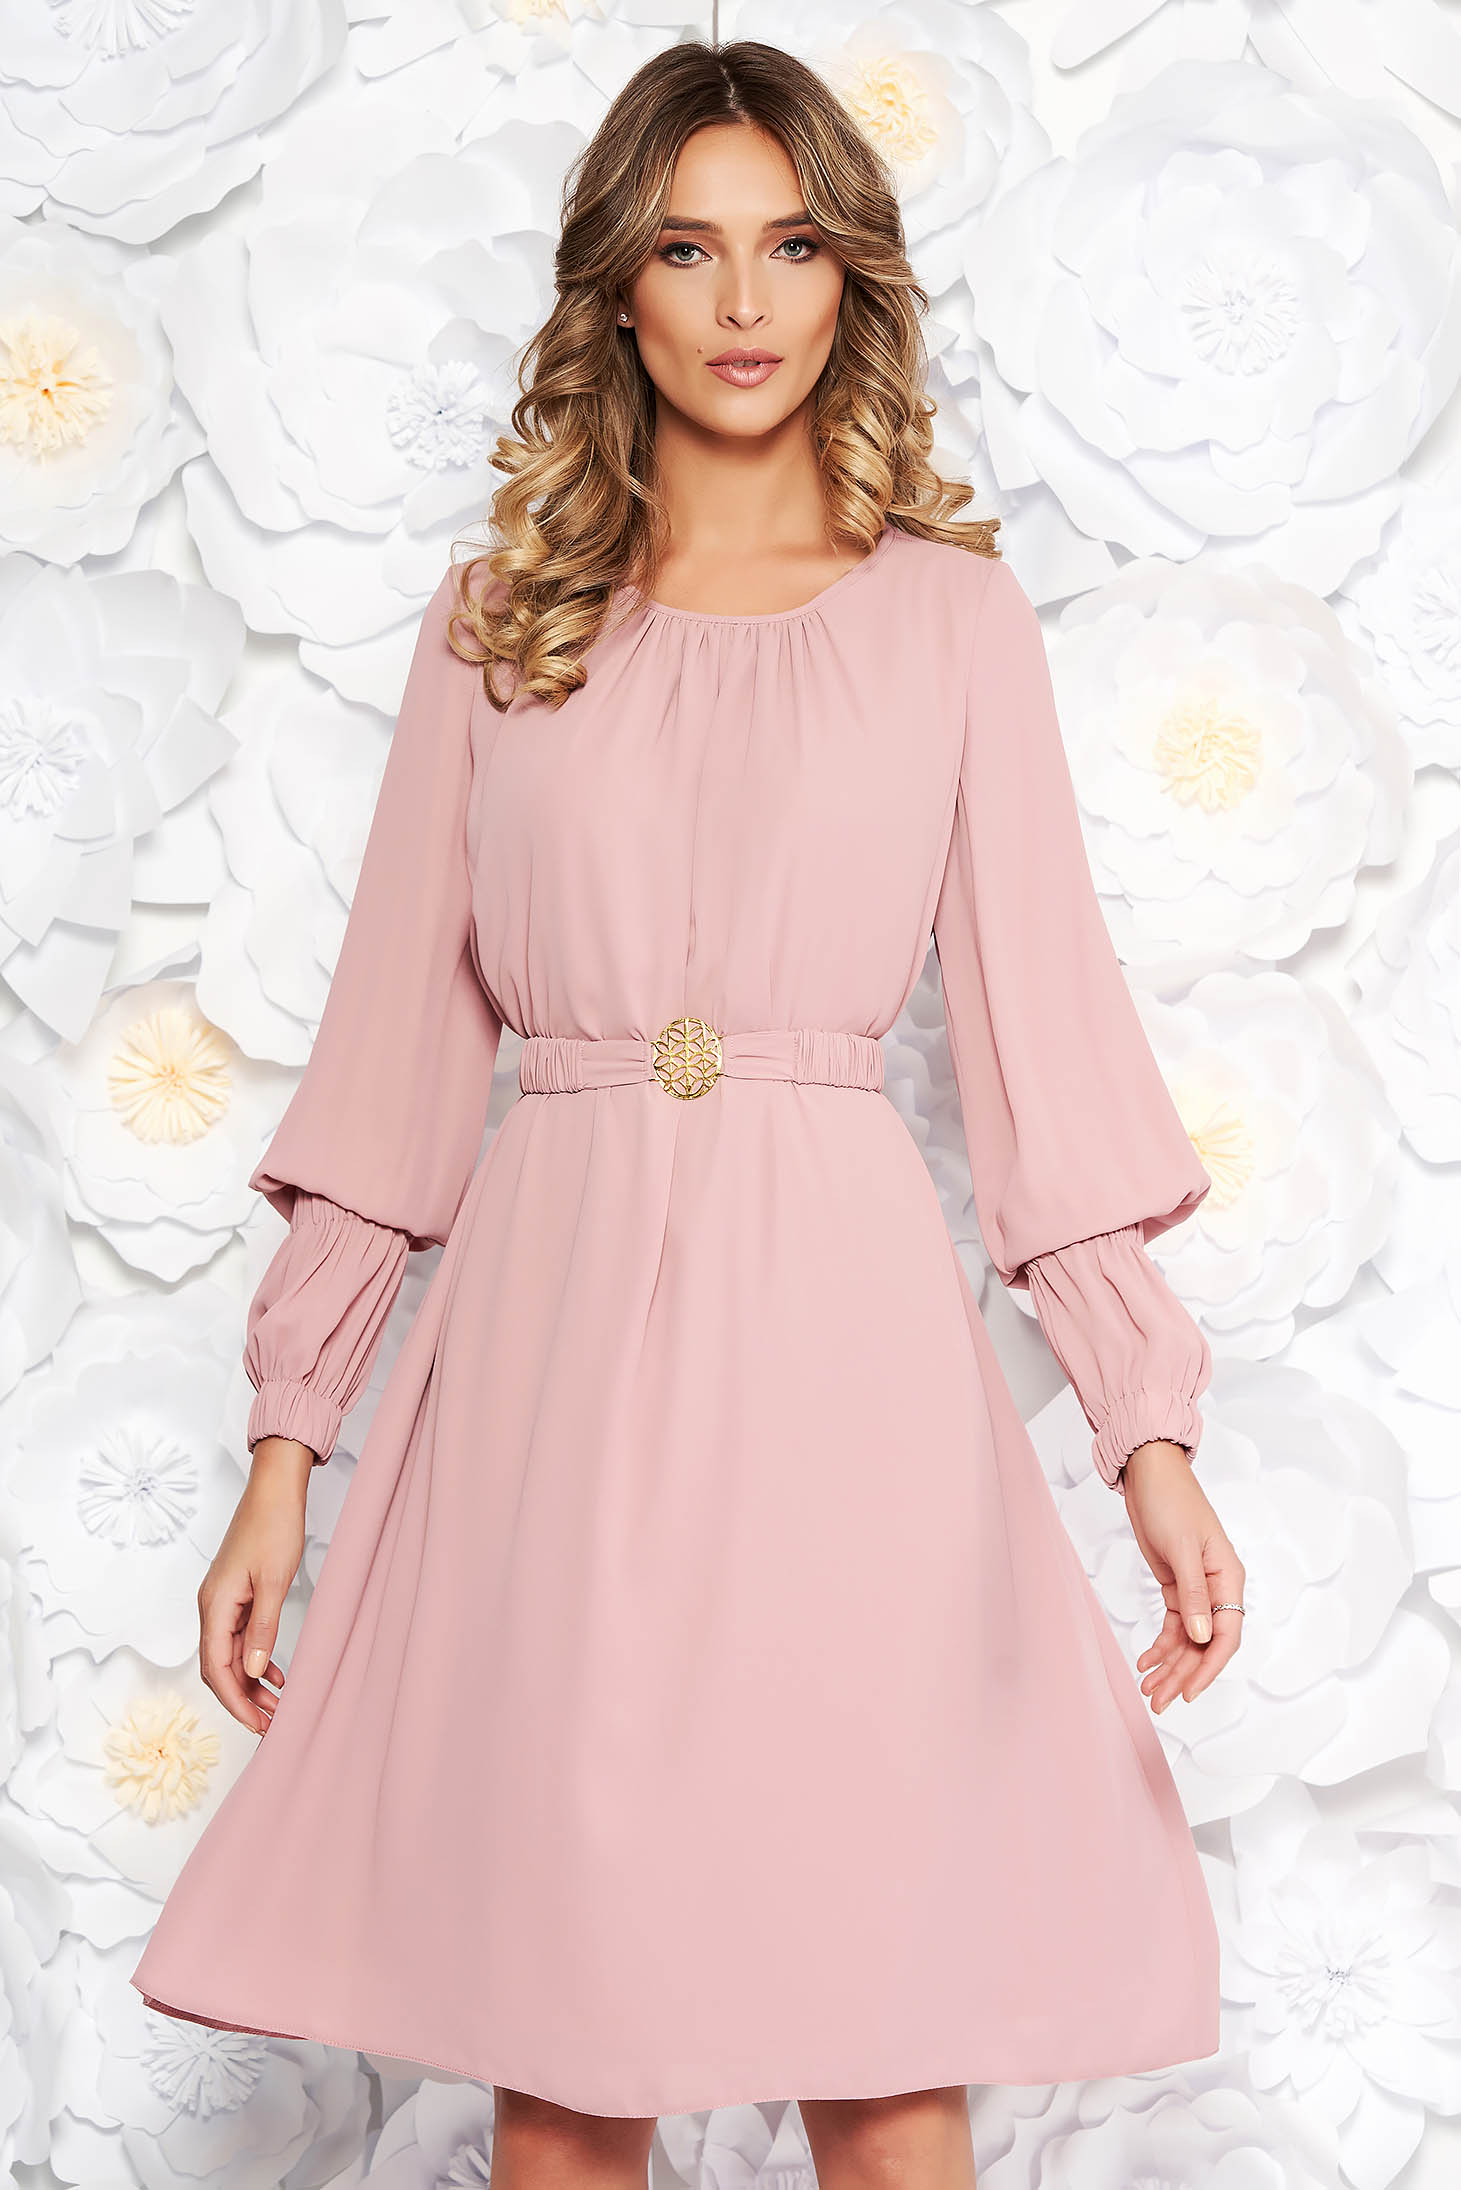 LaDonna rosa elegant flared dress from veil fabric with inside lining accessorized with tied waistband